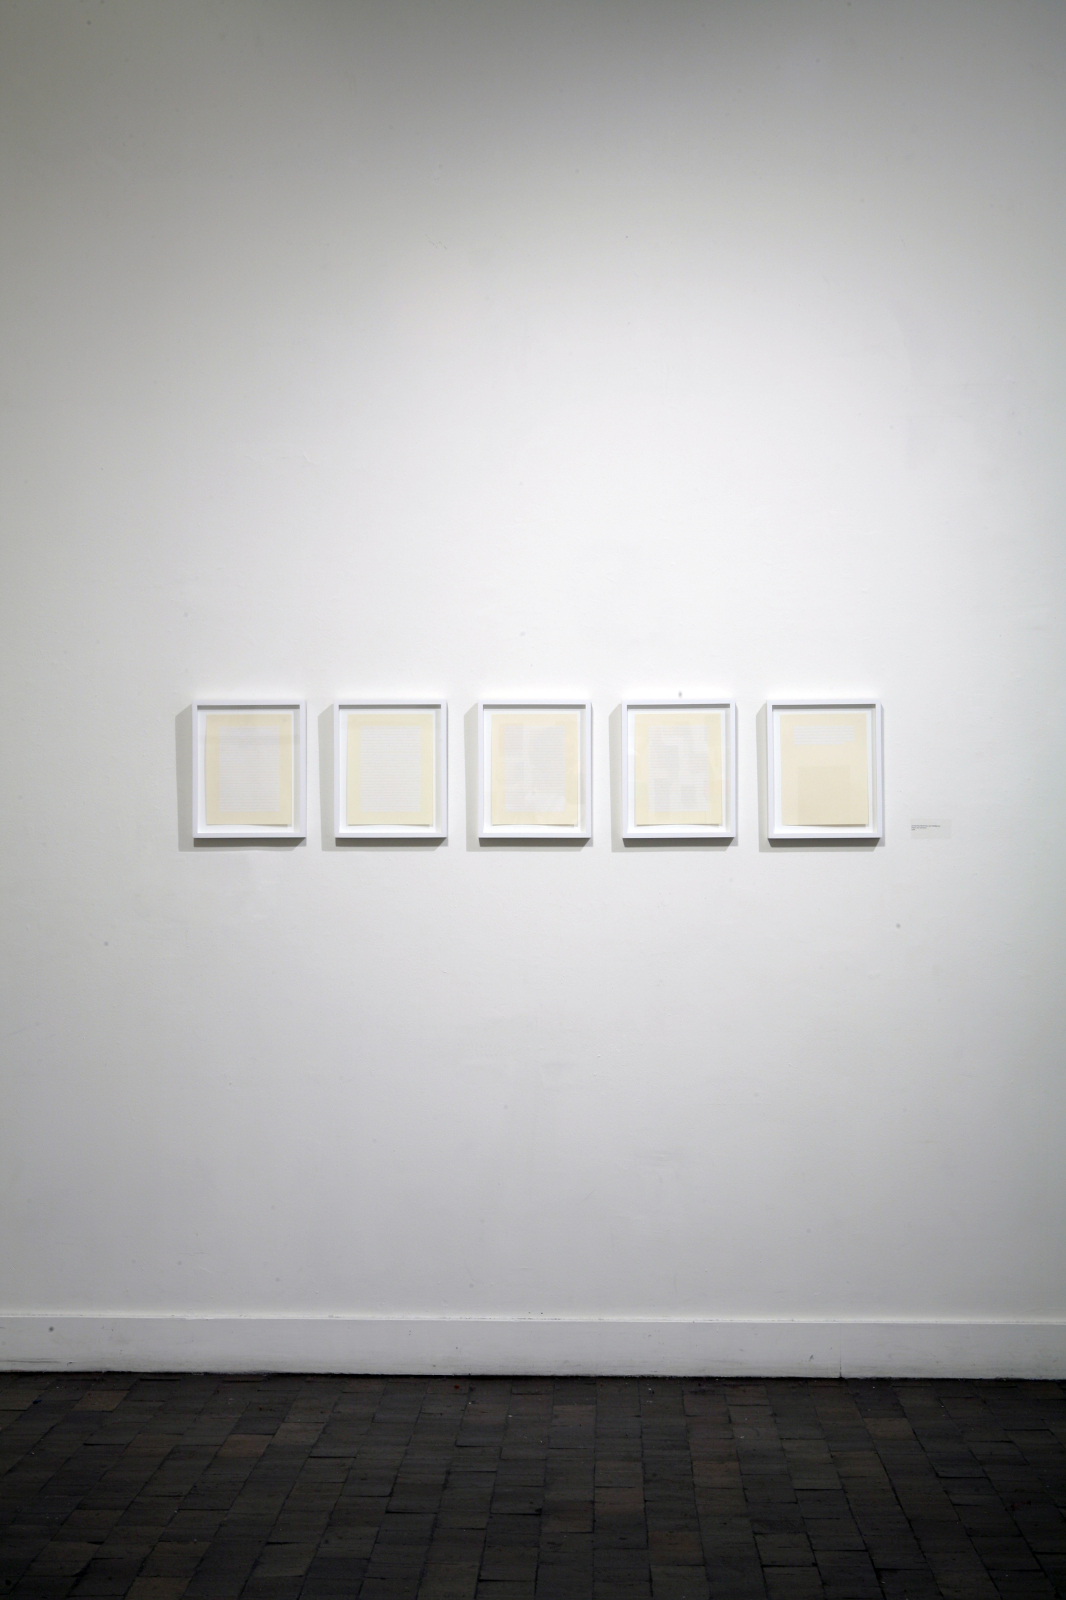 Computing Machinery and Intelligence , 2006 Paper and adhesive 5 pages, 8.5 x 11 inches each